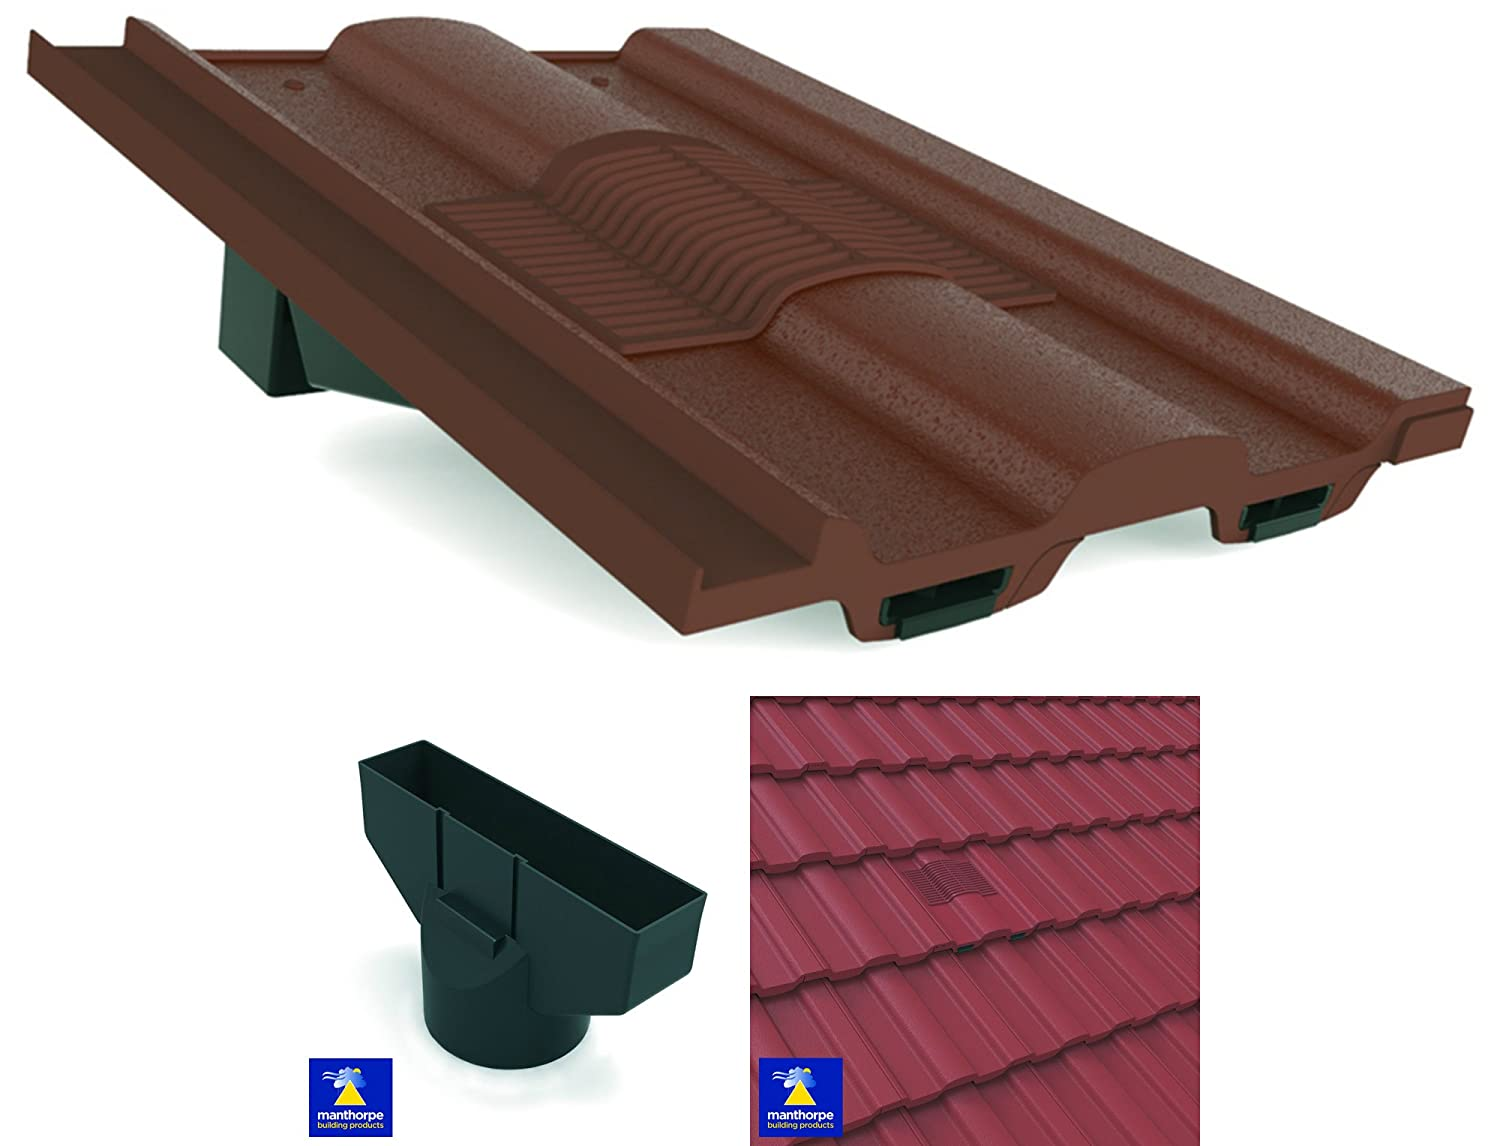 Brown Marley Ludlow Major - Redland Renown Castellated Roof In-Line Tile Vent Ventilator & Flexi Pipe Adaptor Manthorpe